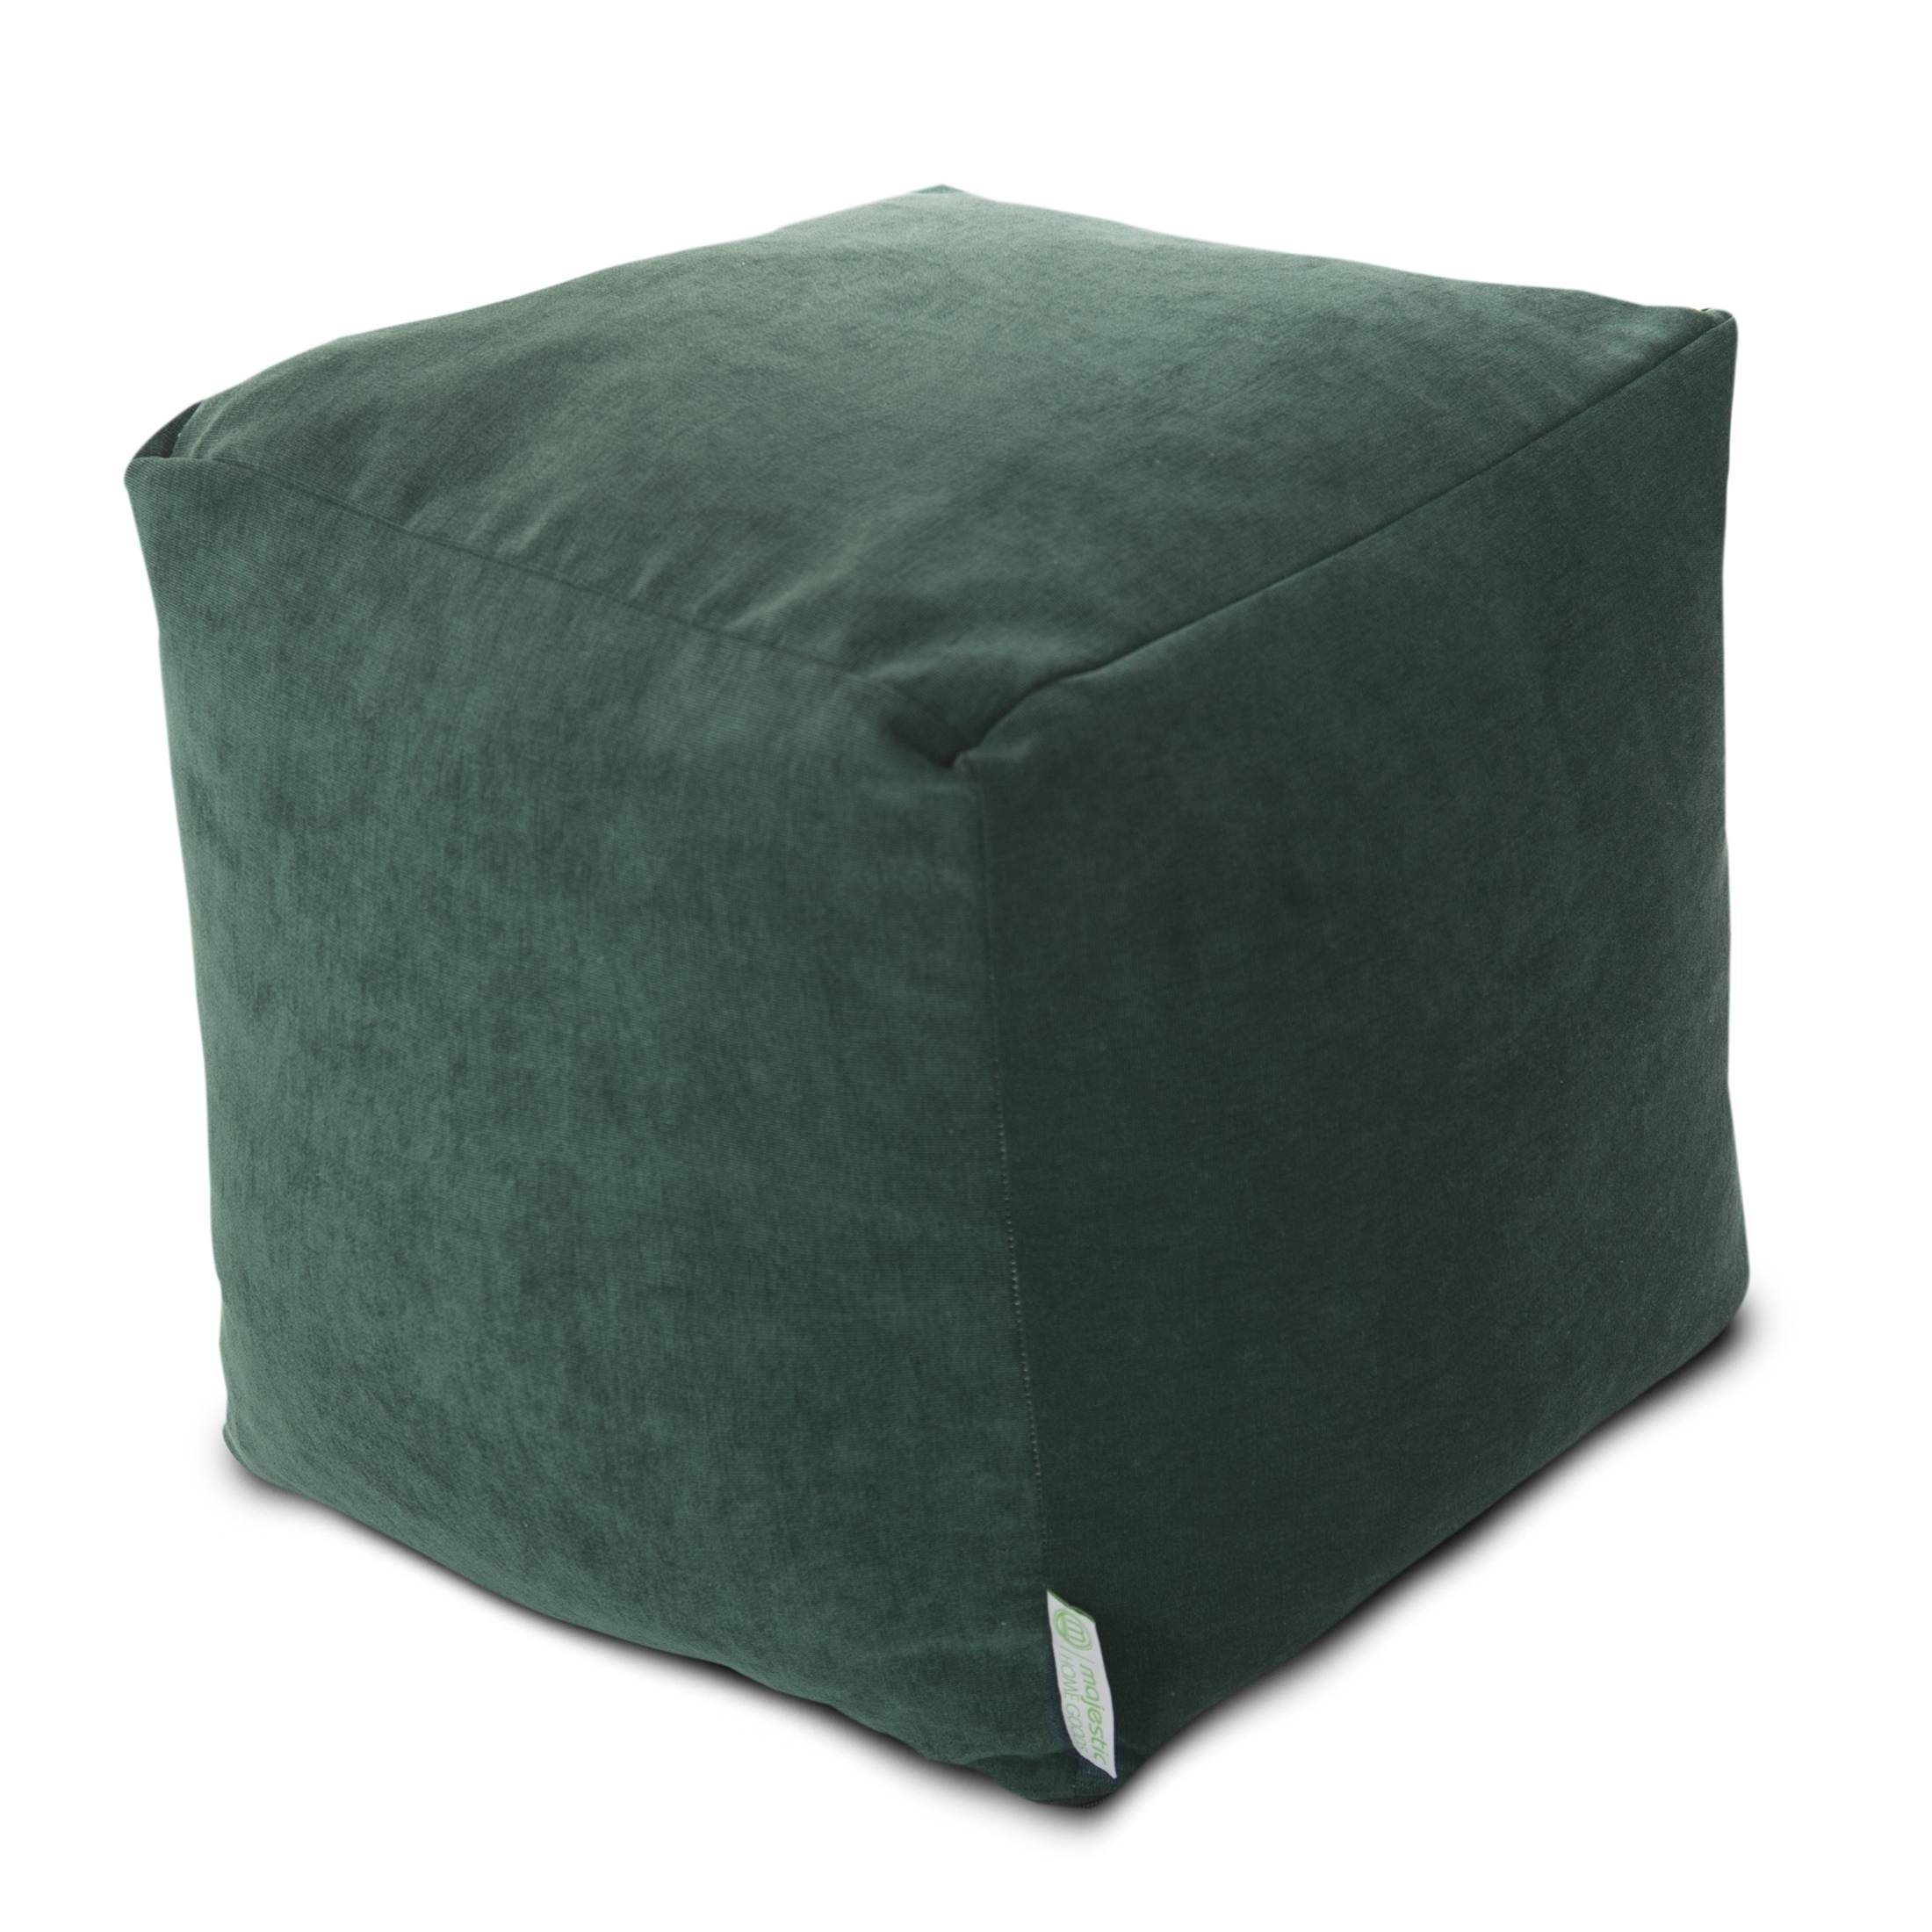 Cubes | Poufs | Footstools | Majestic Home Goods intended for Velvet Footstool (Image 16 of 30)